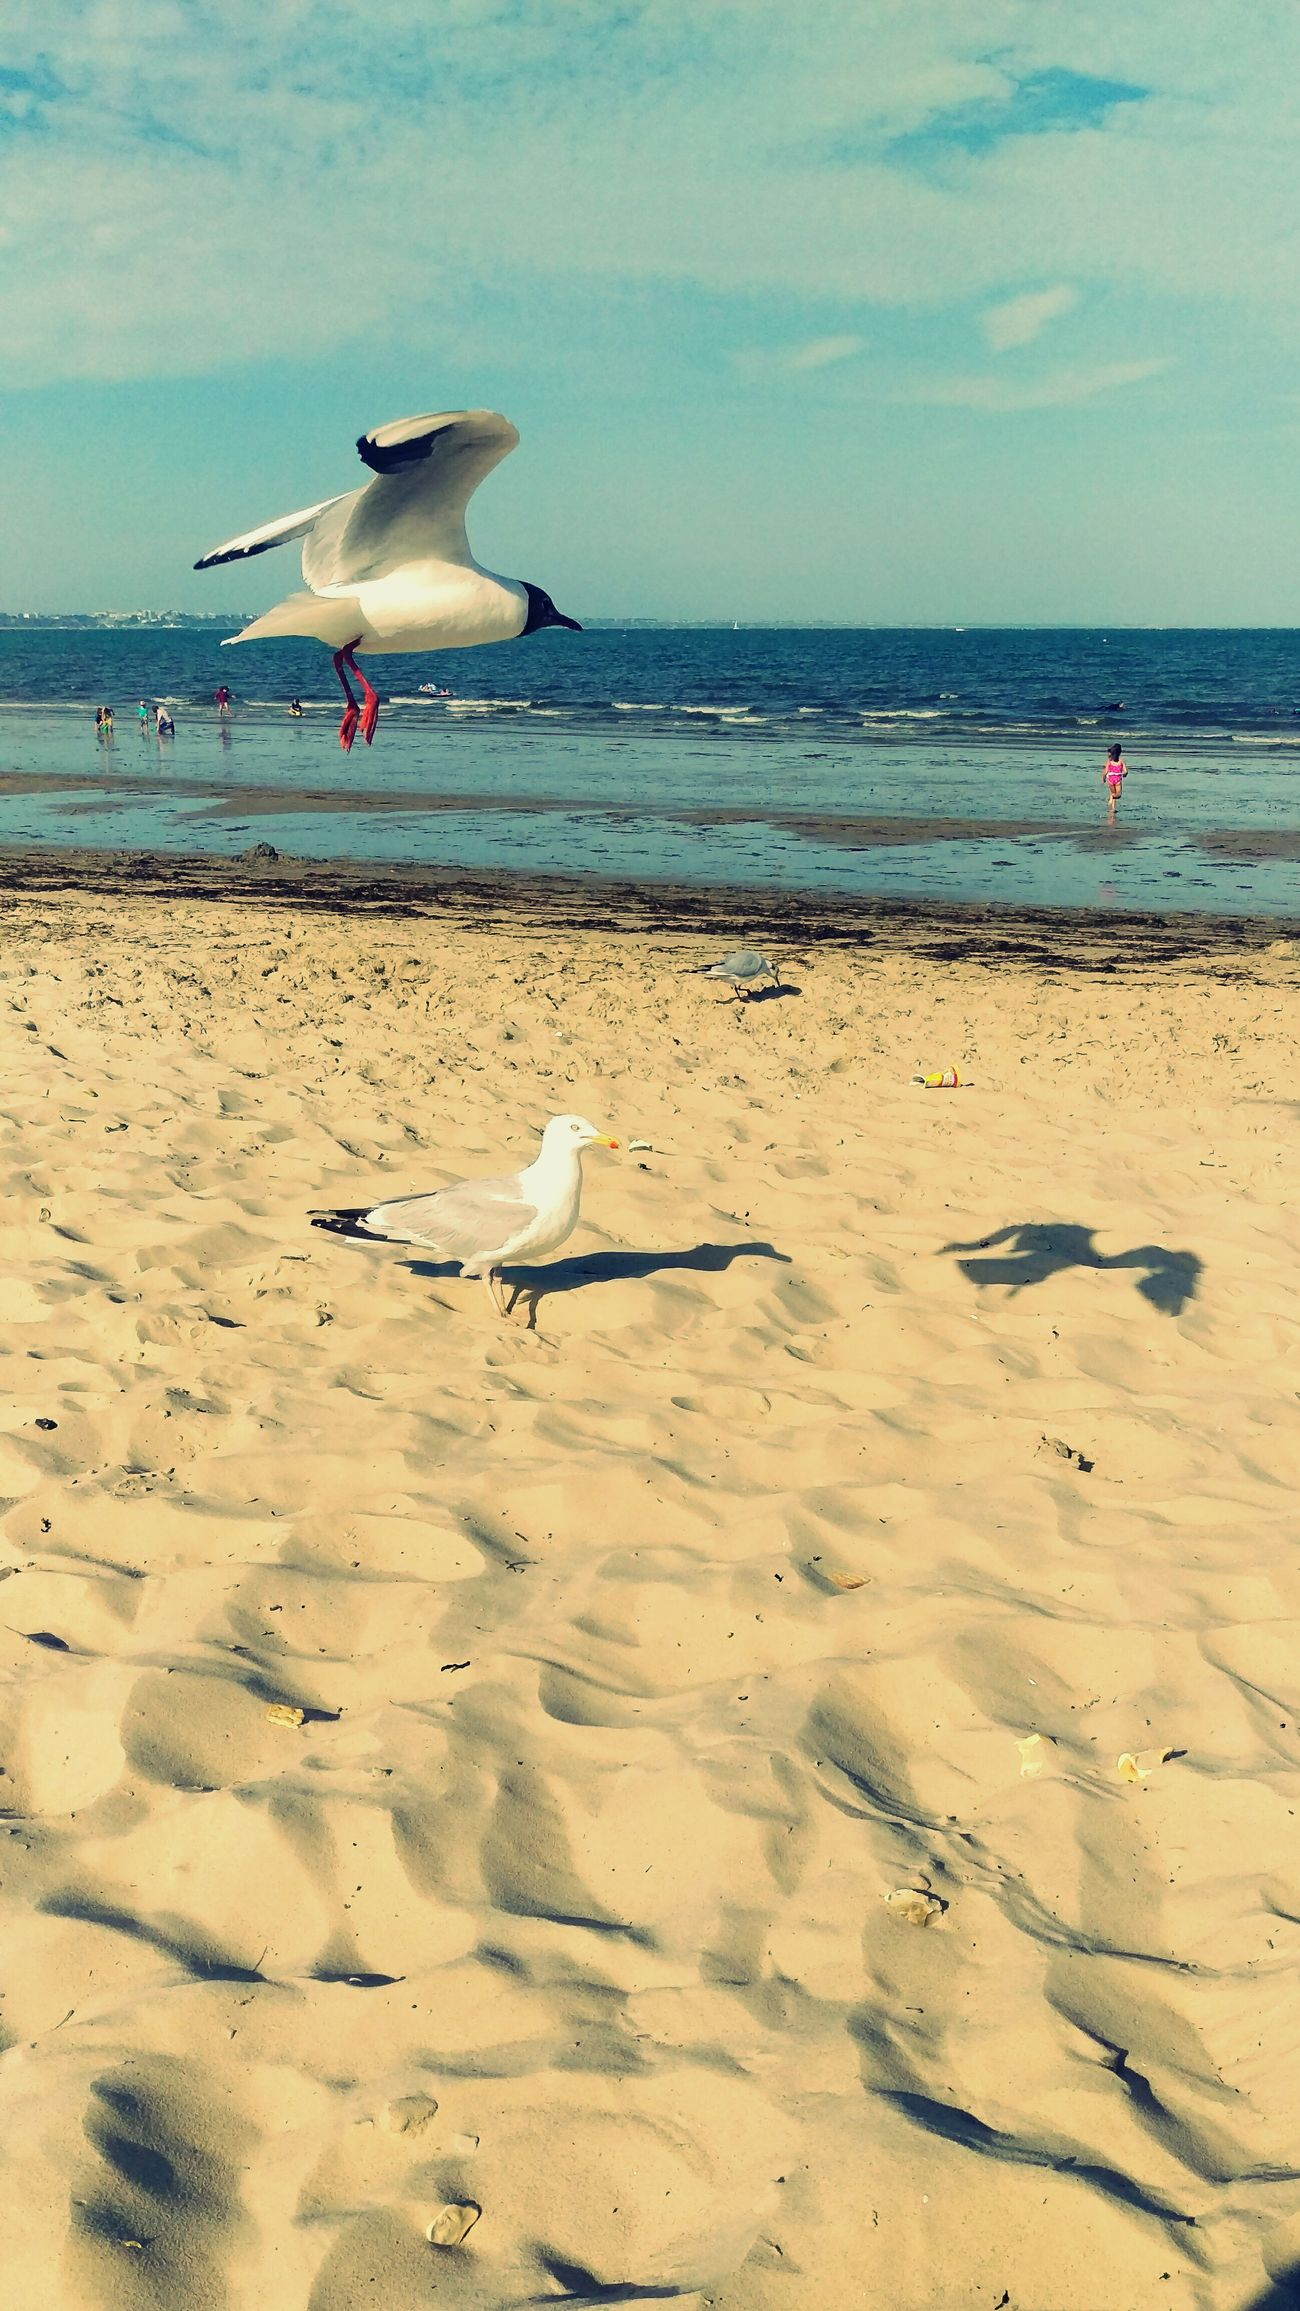 Relaxing Getting A Tan Sea Enjoying The Sun Aroundtheworld Taking Photos Beach Seagulls Birds